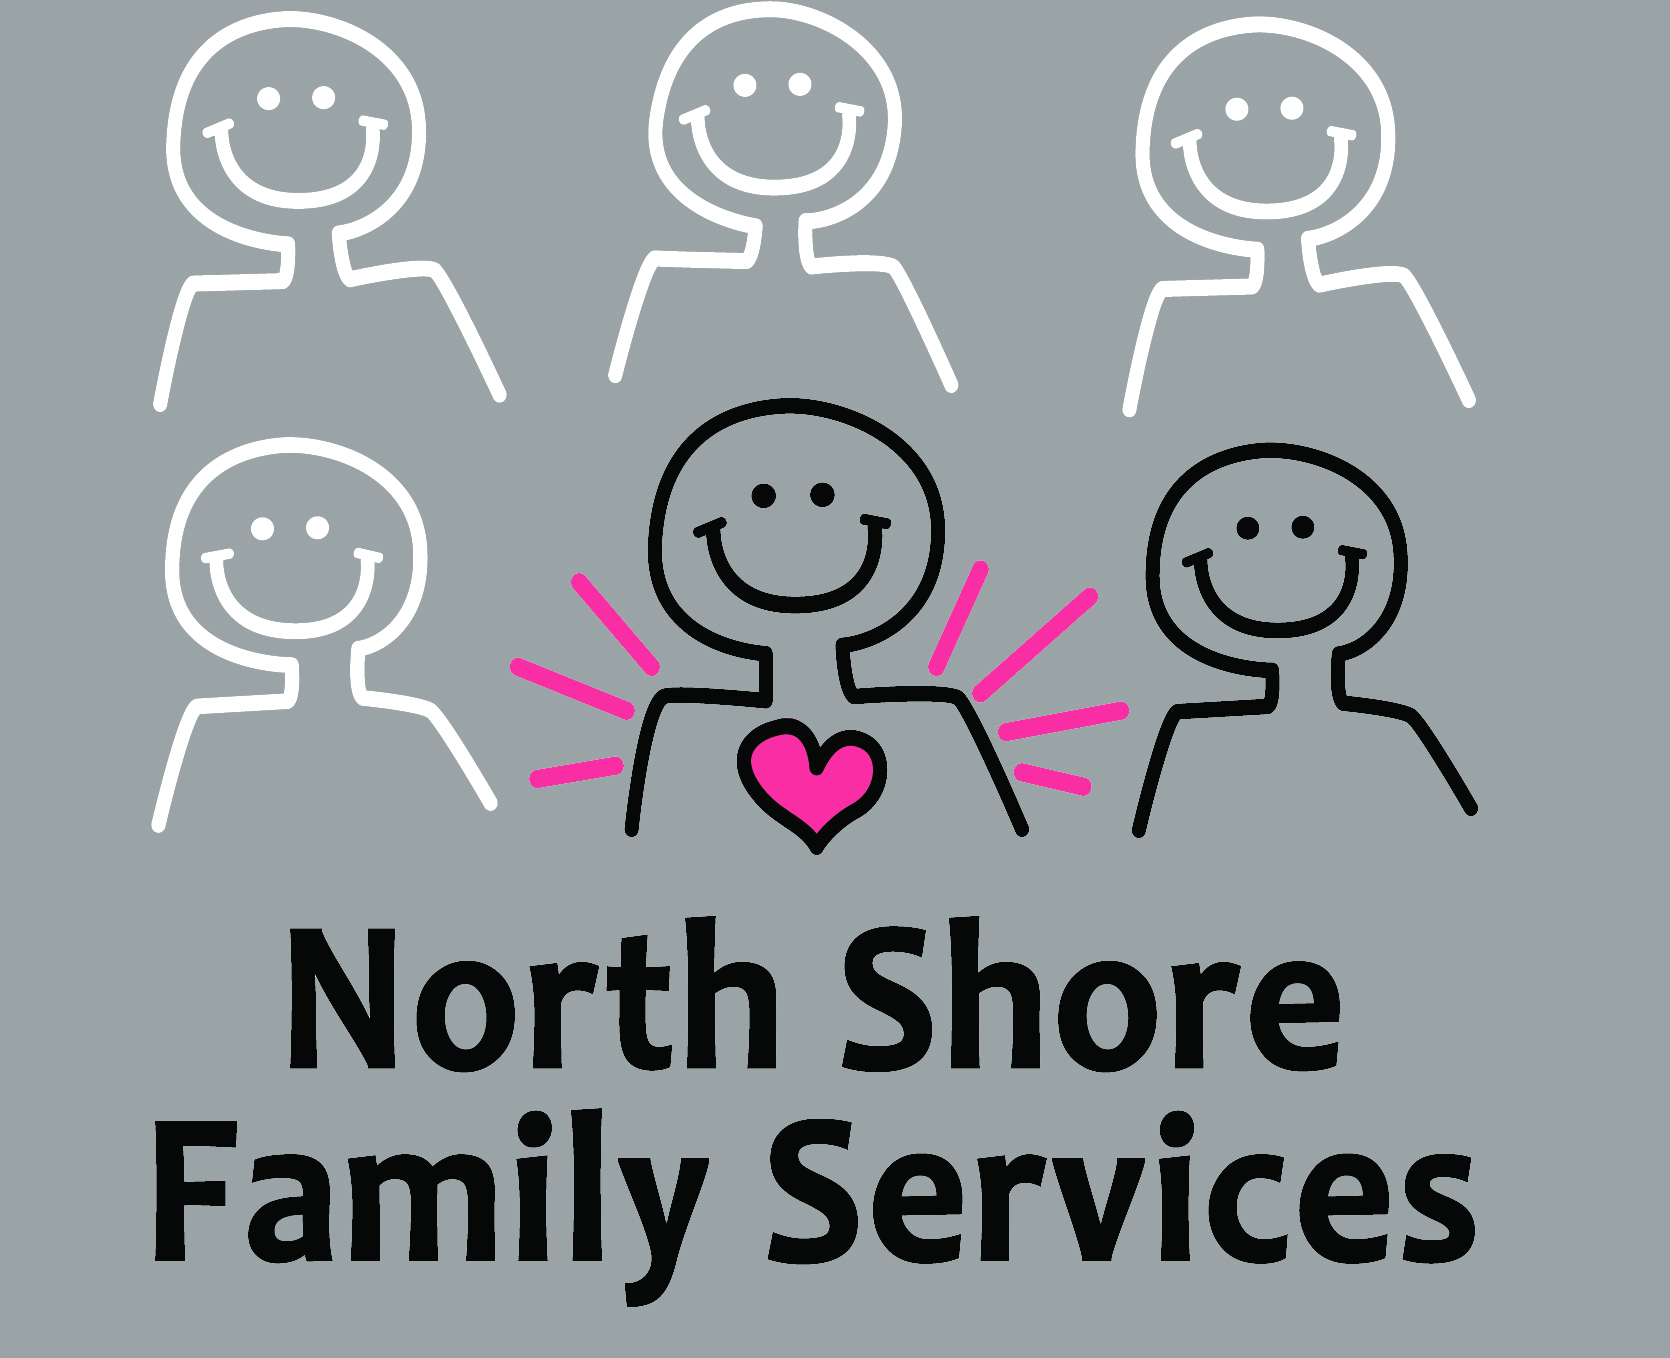 north shore dating services Our location also serves as the north shore visitor & business services center drop by to pick up visitor information and maps, make copies, send faxes and more.